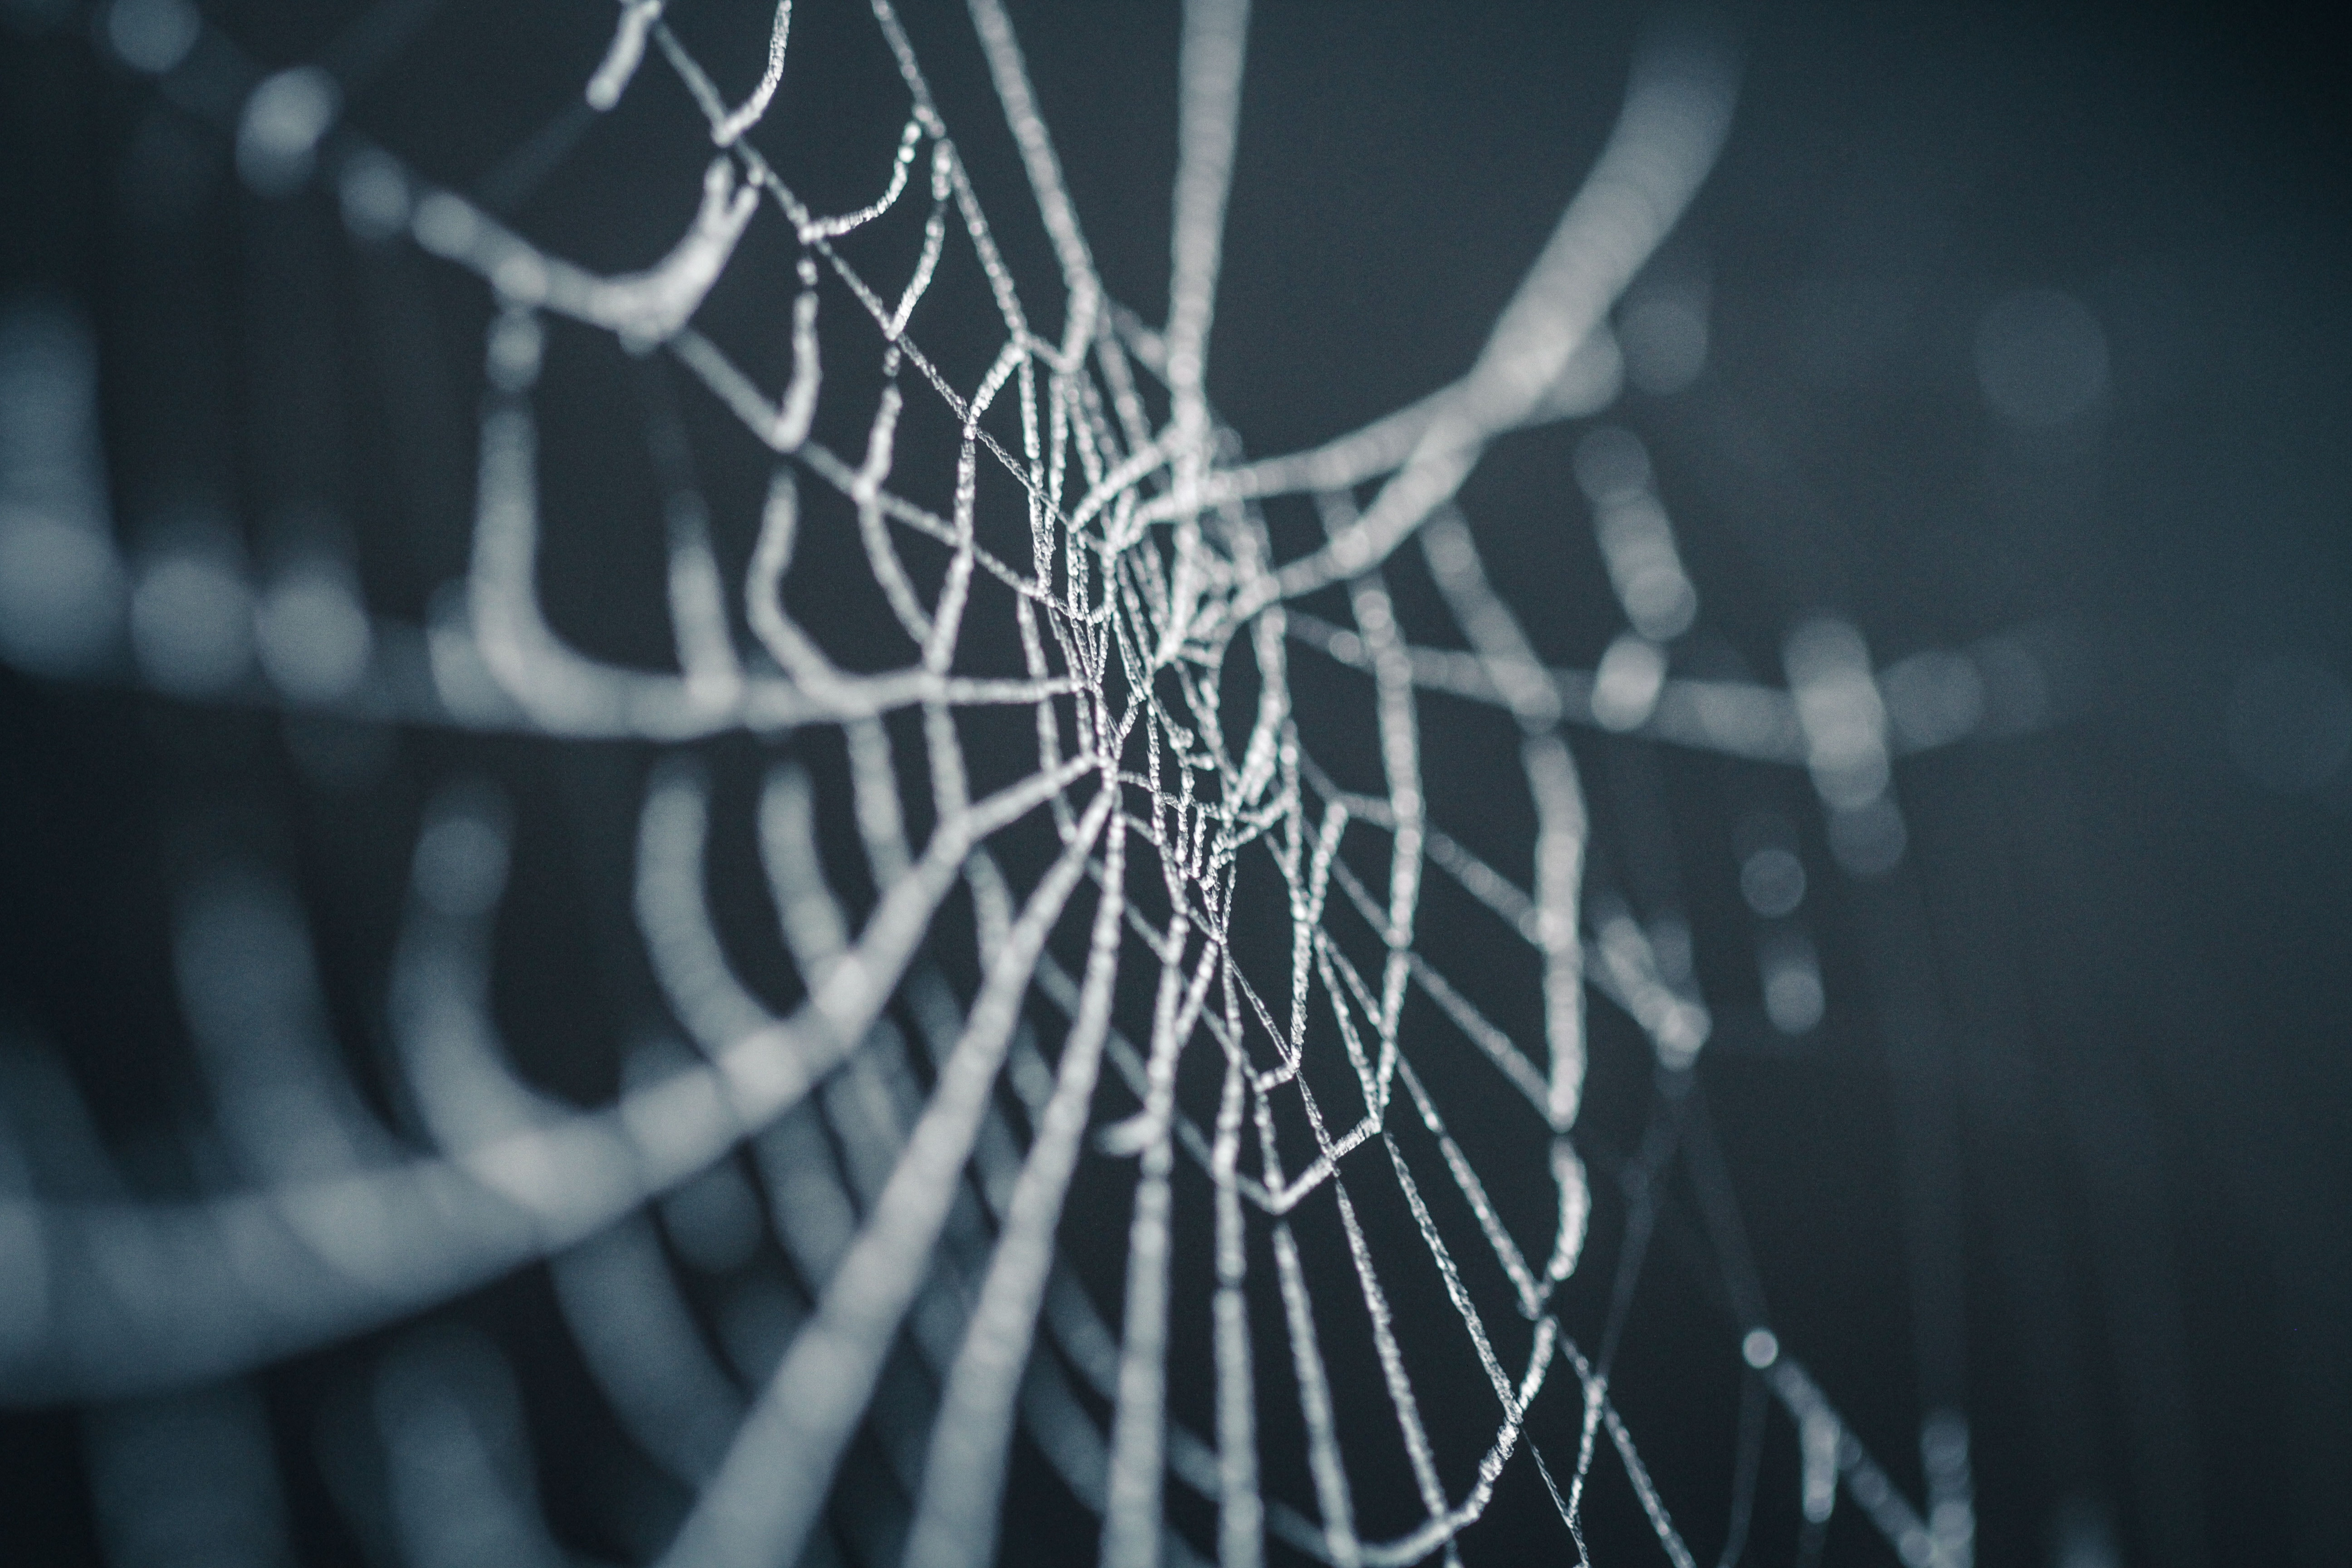 A spiderweb to represent a semon lesson how spiders teach us about God's lessons